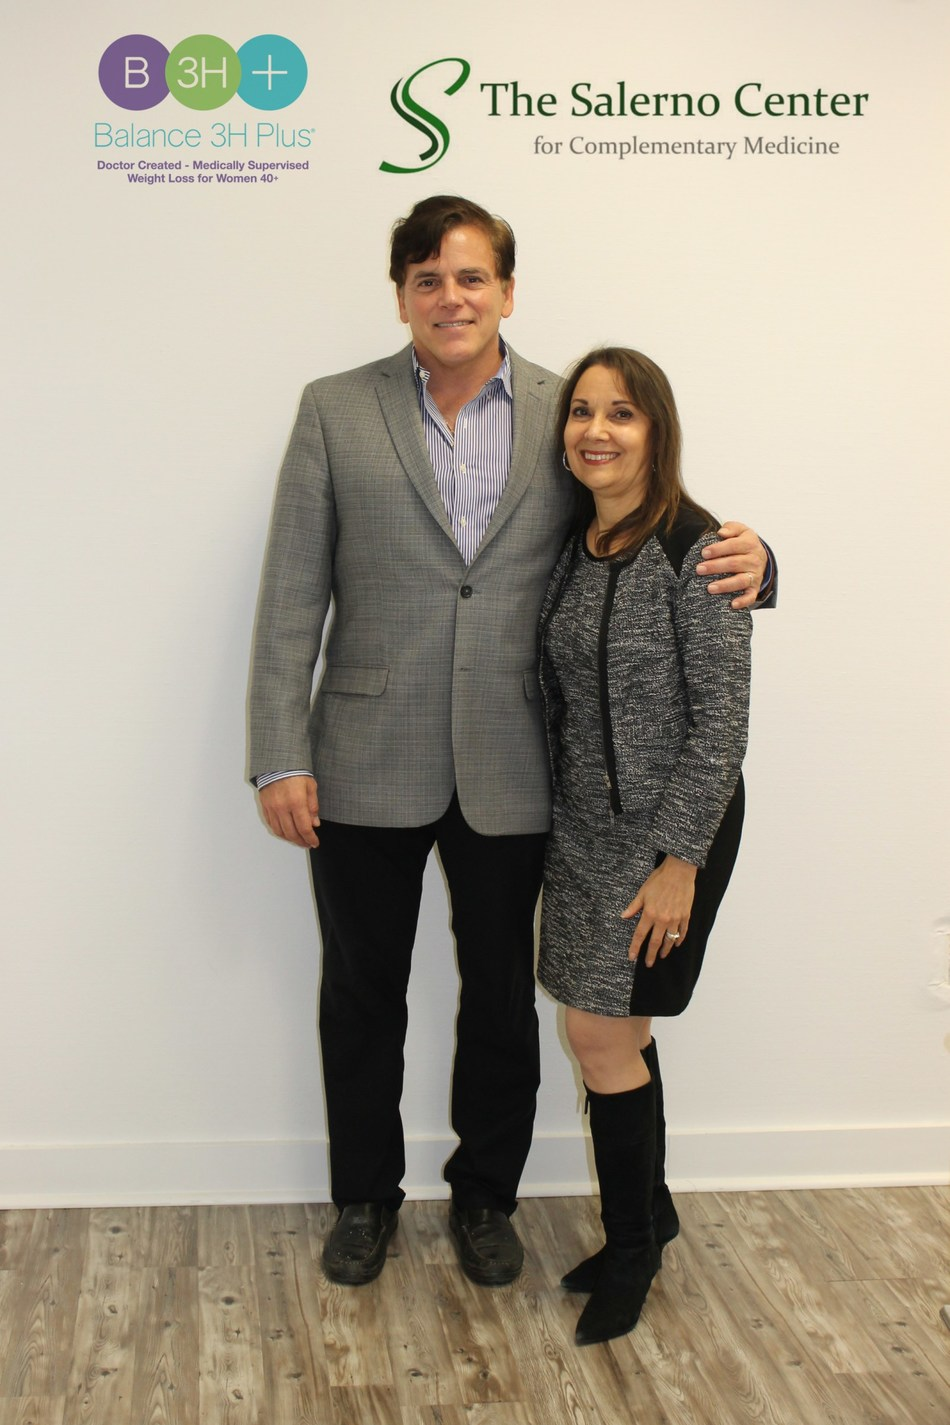 Dr. John Salerno, founder, The Salerno Center with Angela T. Russo, a functional nutritionist and Balance 3H Plus weight loss expert.